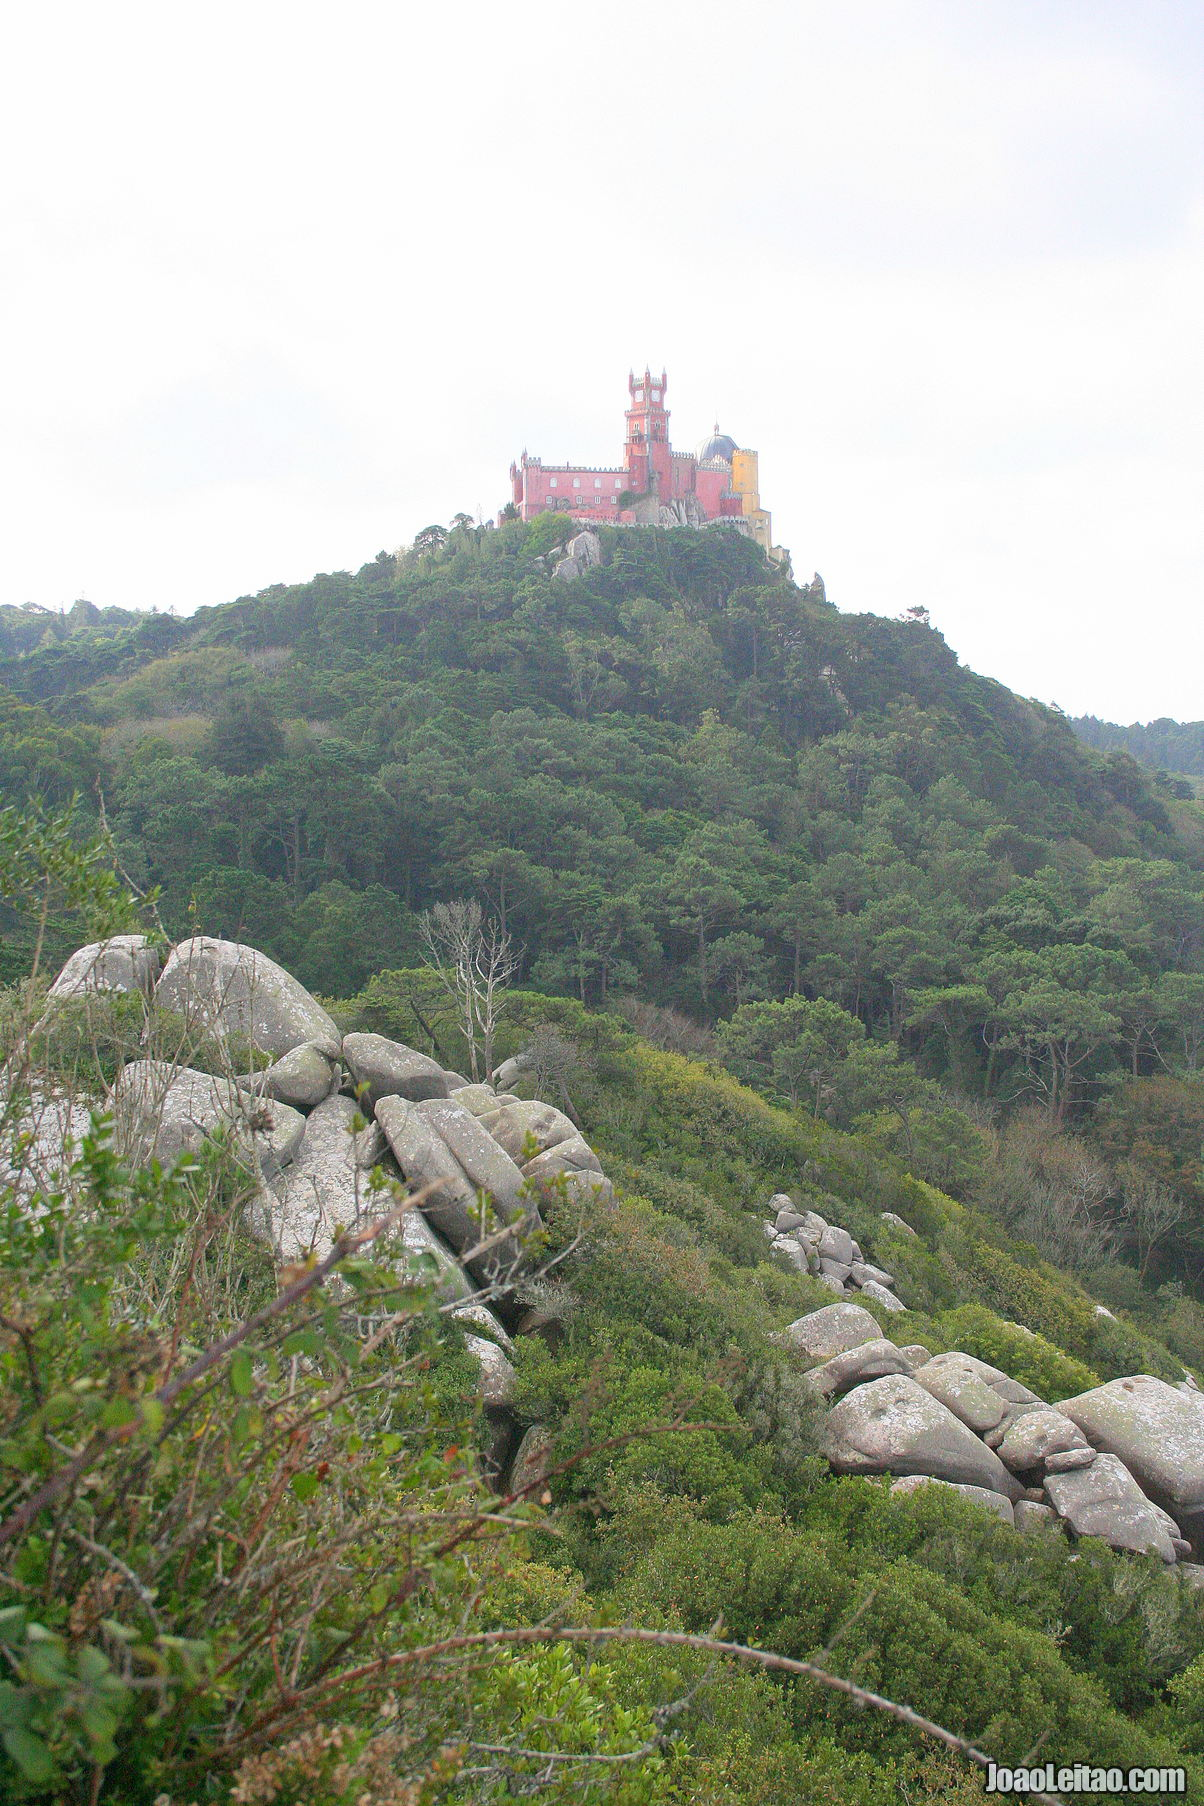 View from the Pena Palace in Sintra Portugal